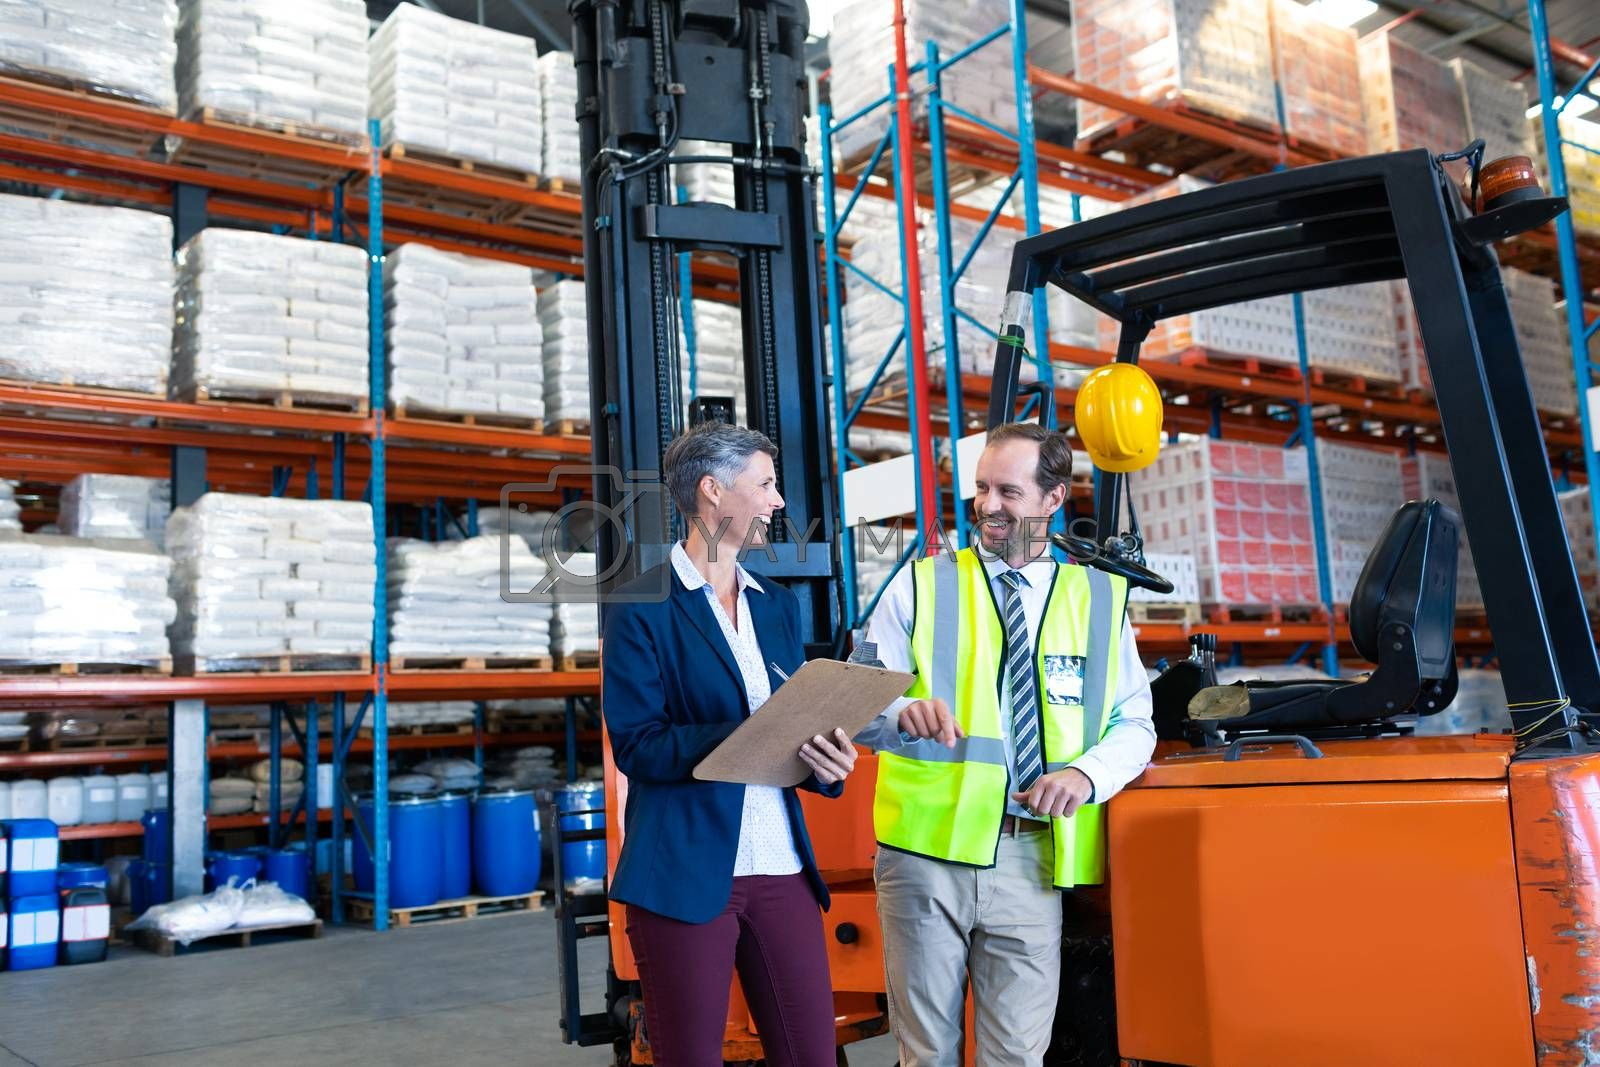 Front view of happy mature Caucasian male and female staff interacting with each other near forklift in warehouse. This is a freight transportation and distribution warehouse. Industrial and industrial workers concept